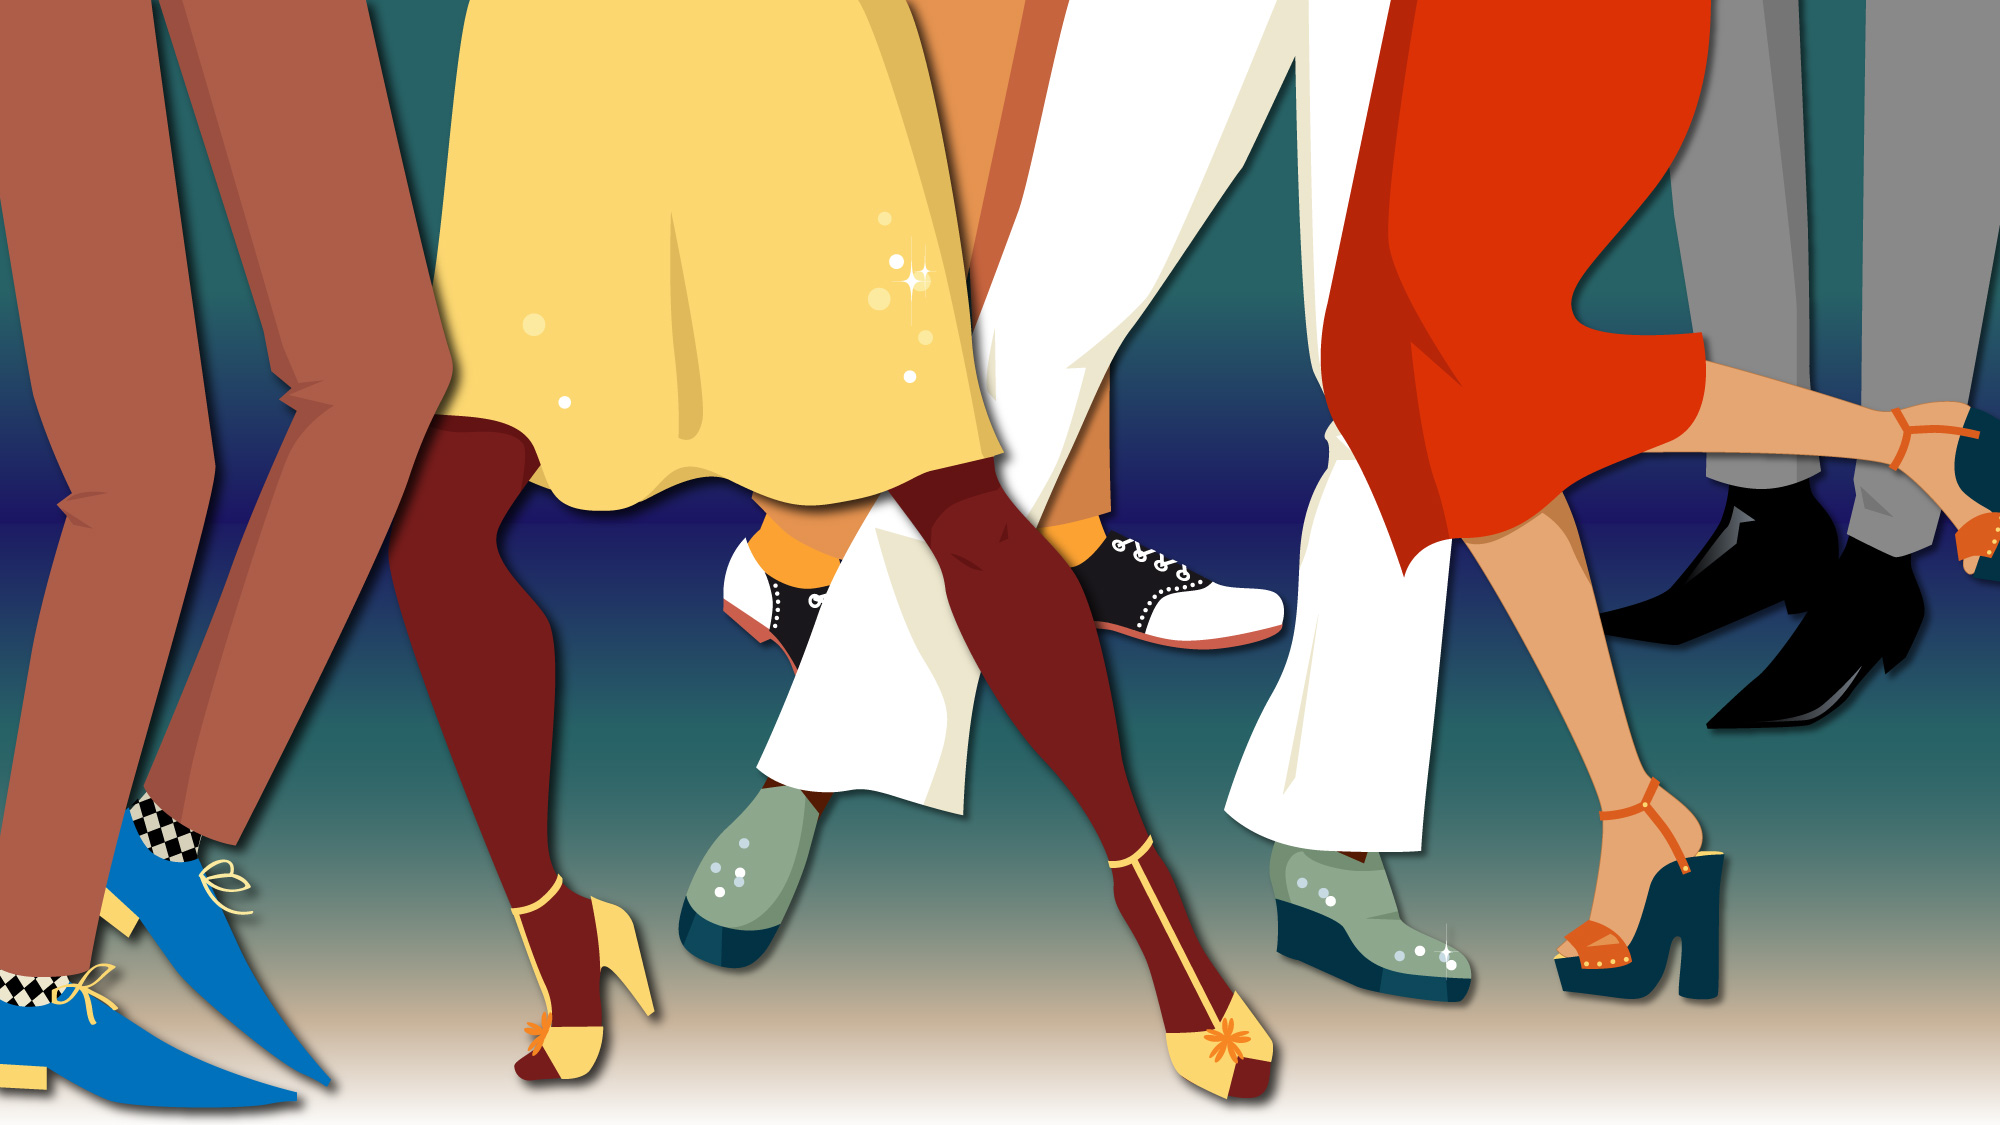 illustration of different people showcasing their shoes